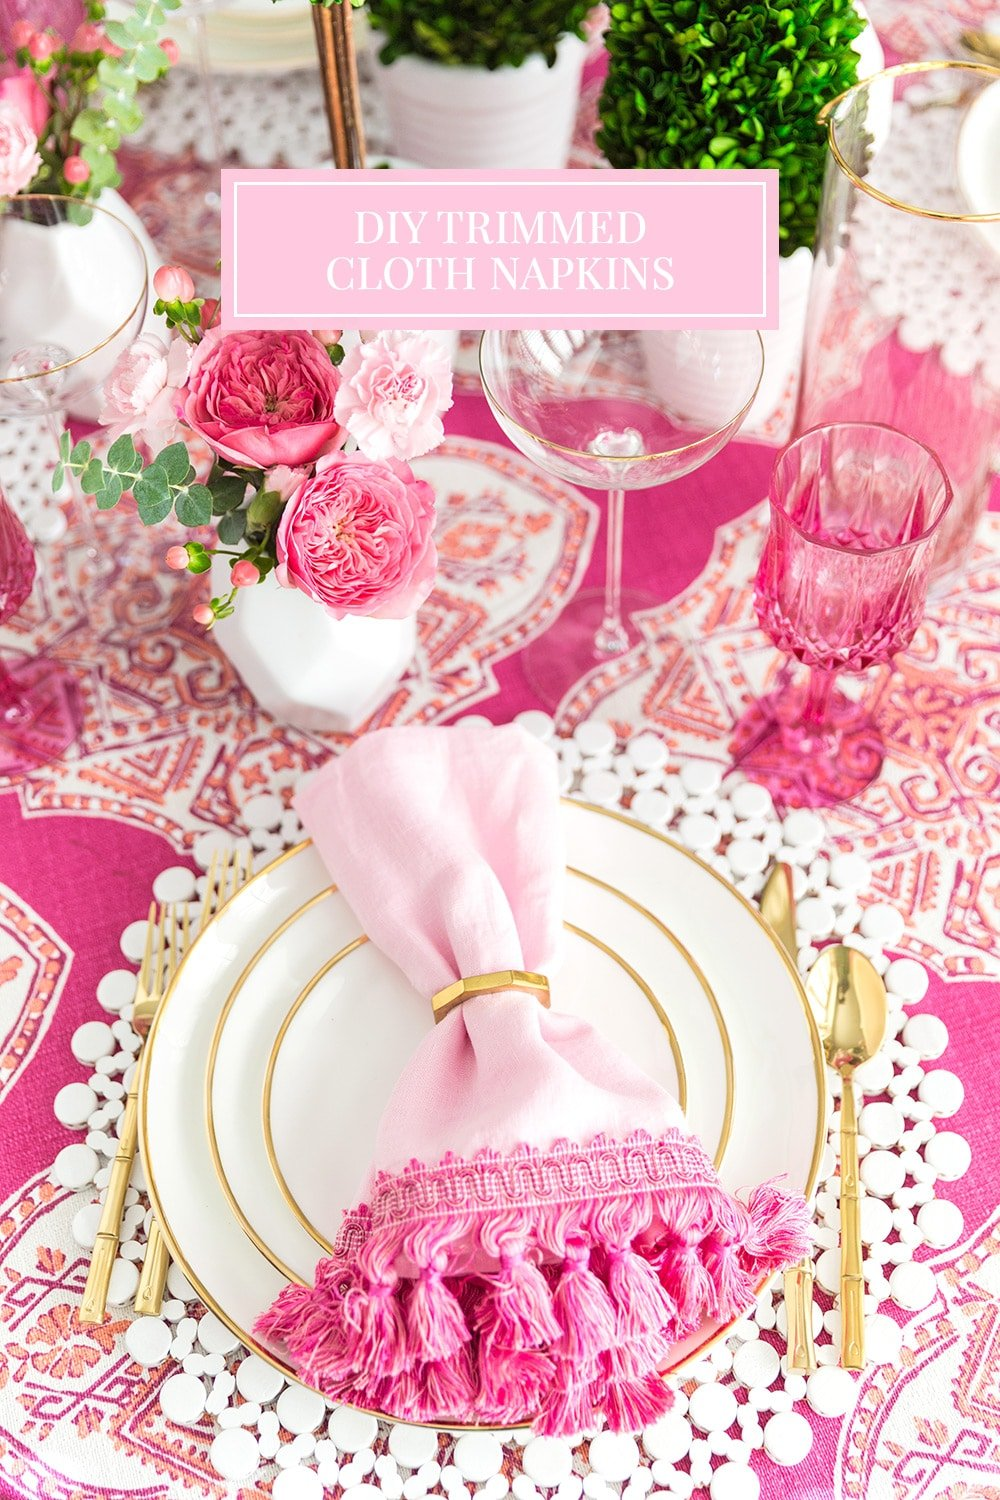 DIY Trimmed Cloth Napkins #diy